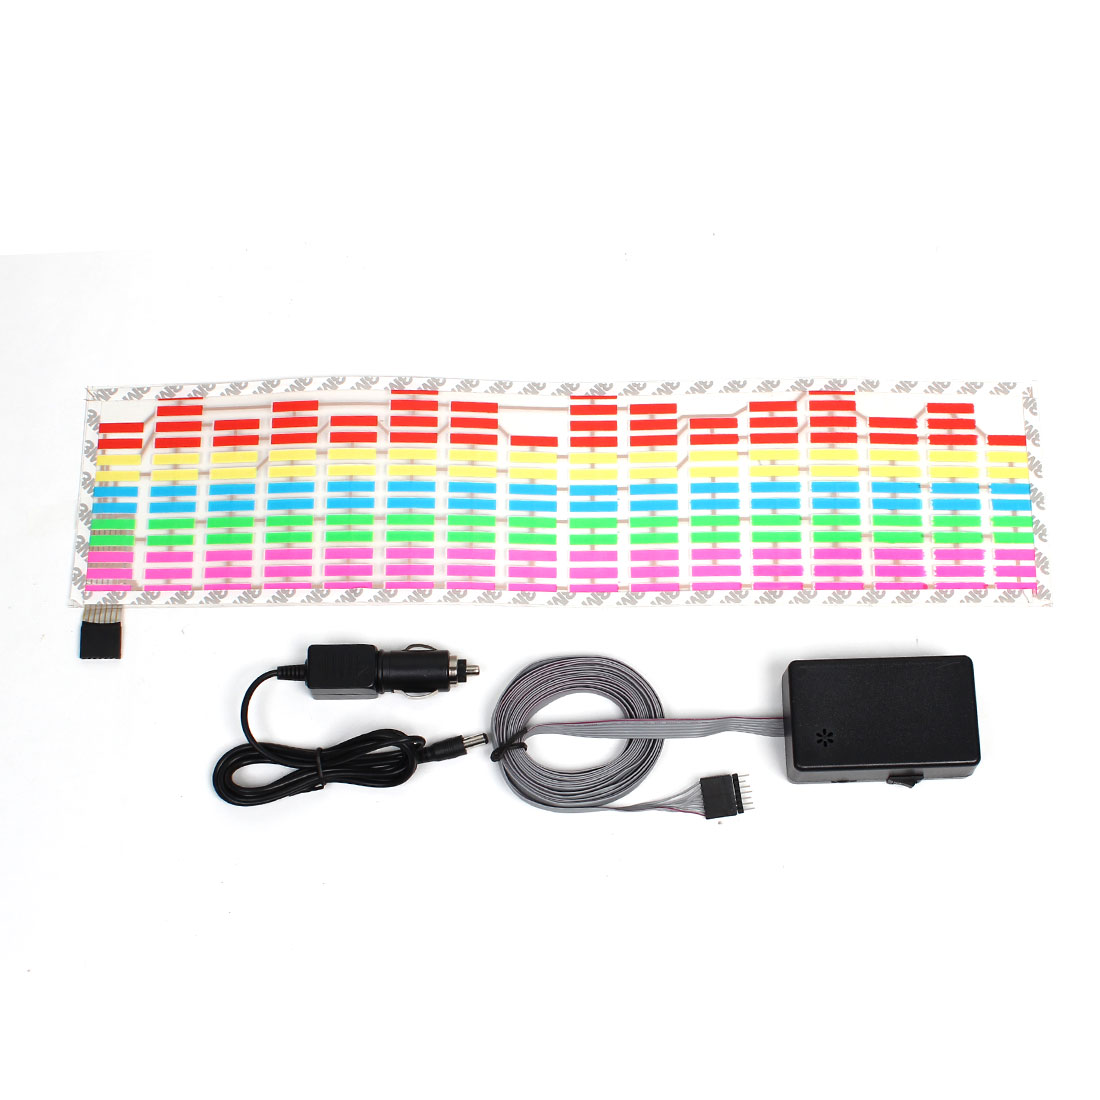 45cm x 11cm Colorful LED Rhythm Lamp Sound Activated Equalizer Sticker for Car